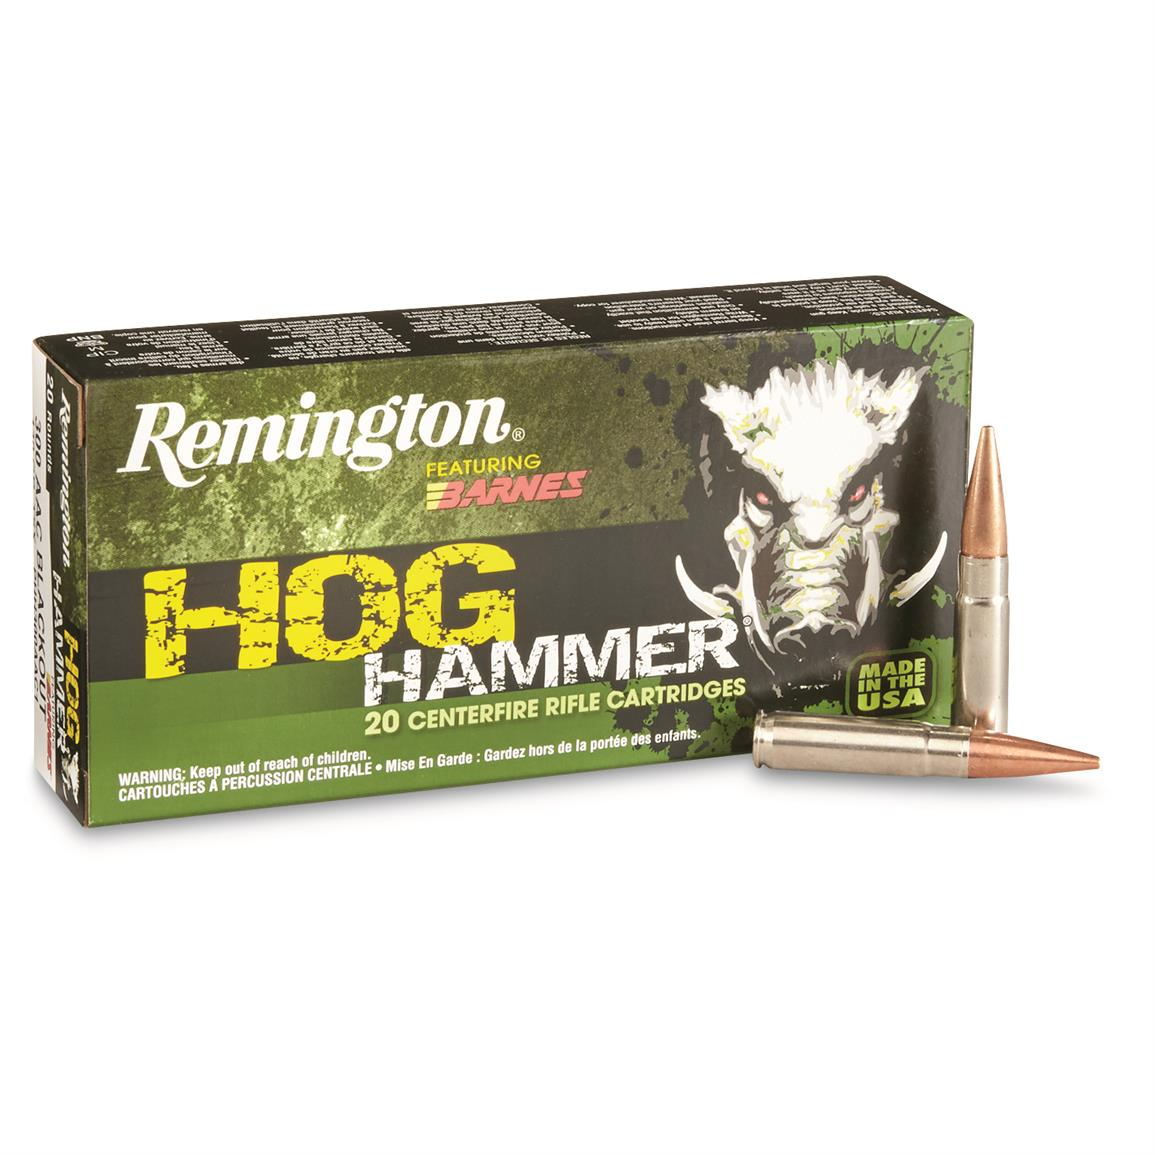 Remington, 300 AAC, Black Out Hog Hammer Rifle, 130 Grain, 20 Rounds